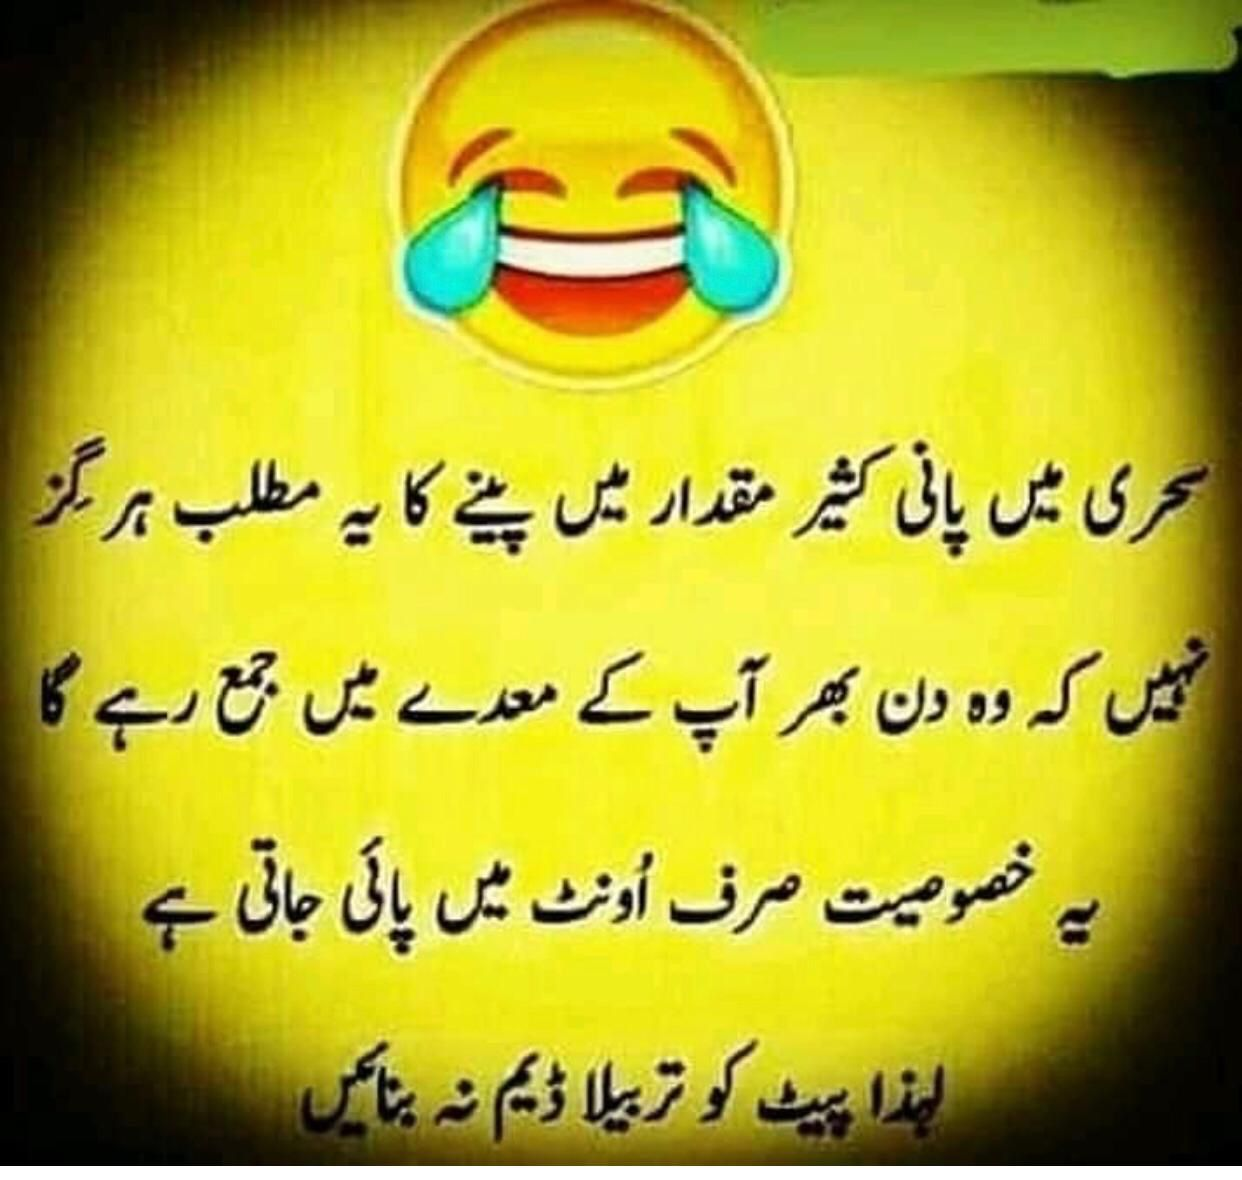 Pin By Zees On Urdu Corner Ramadan Quotes Birthday Wishes For Friend Funny Quotes